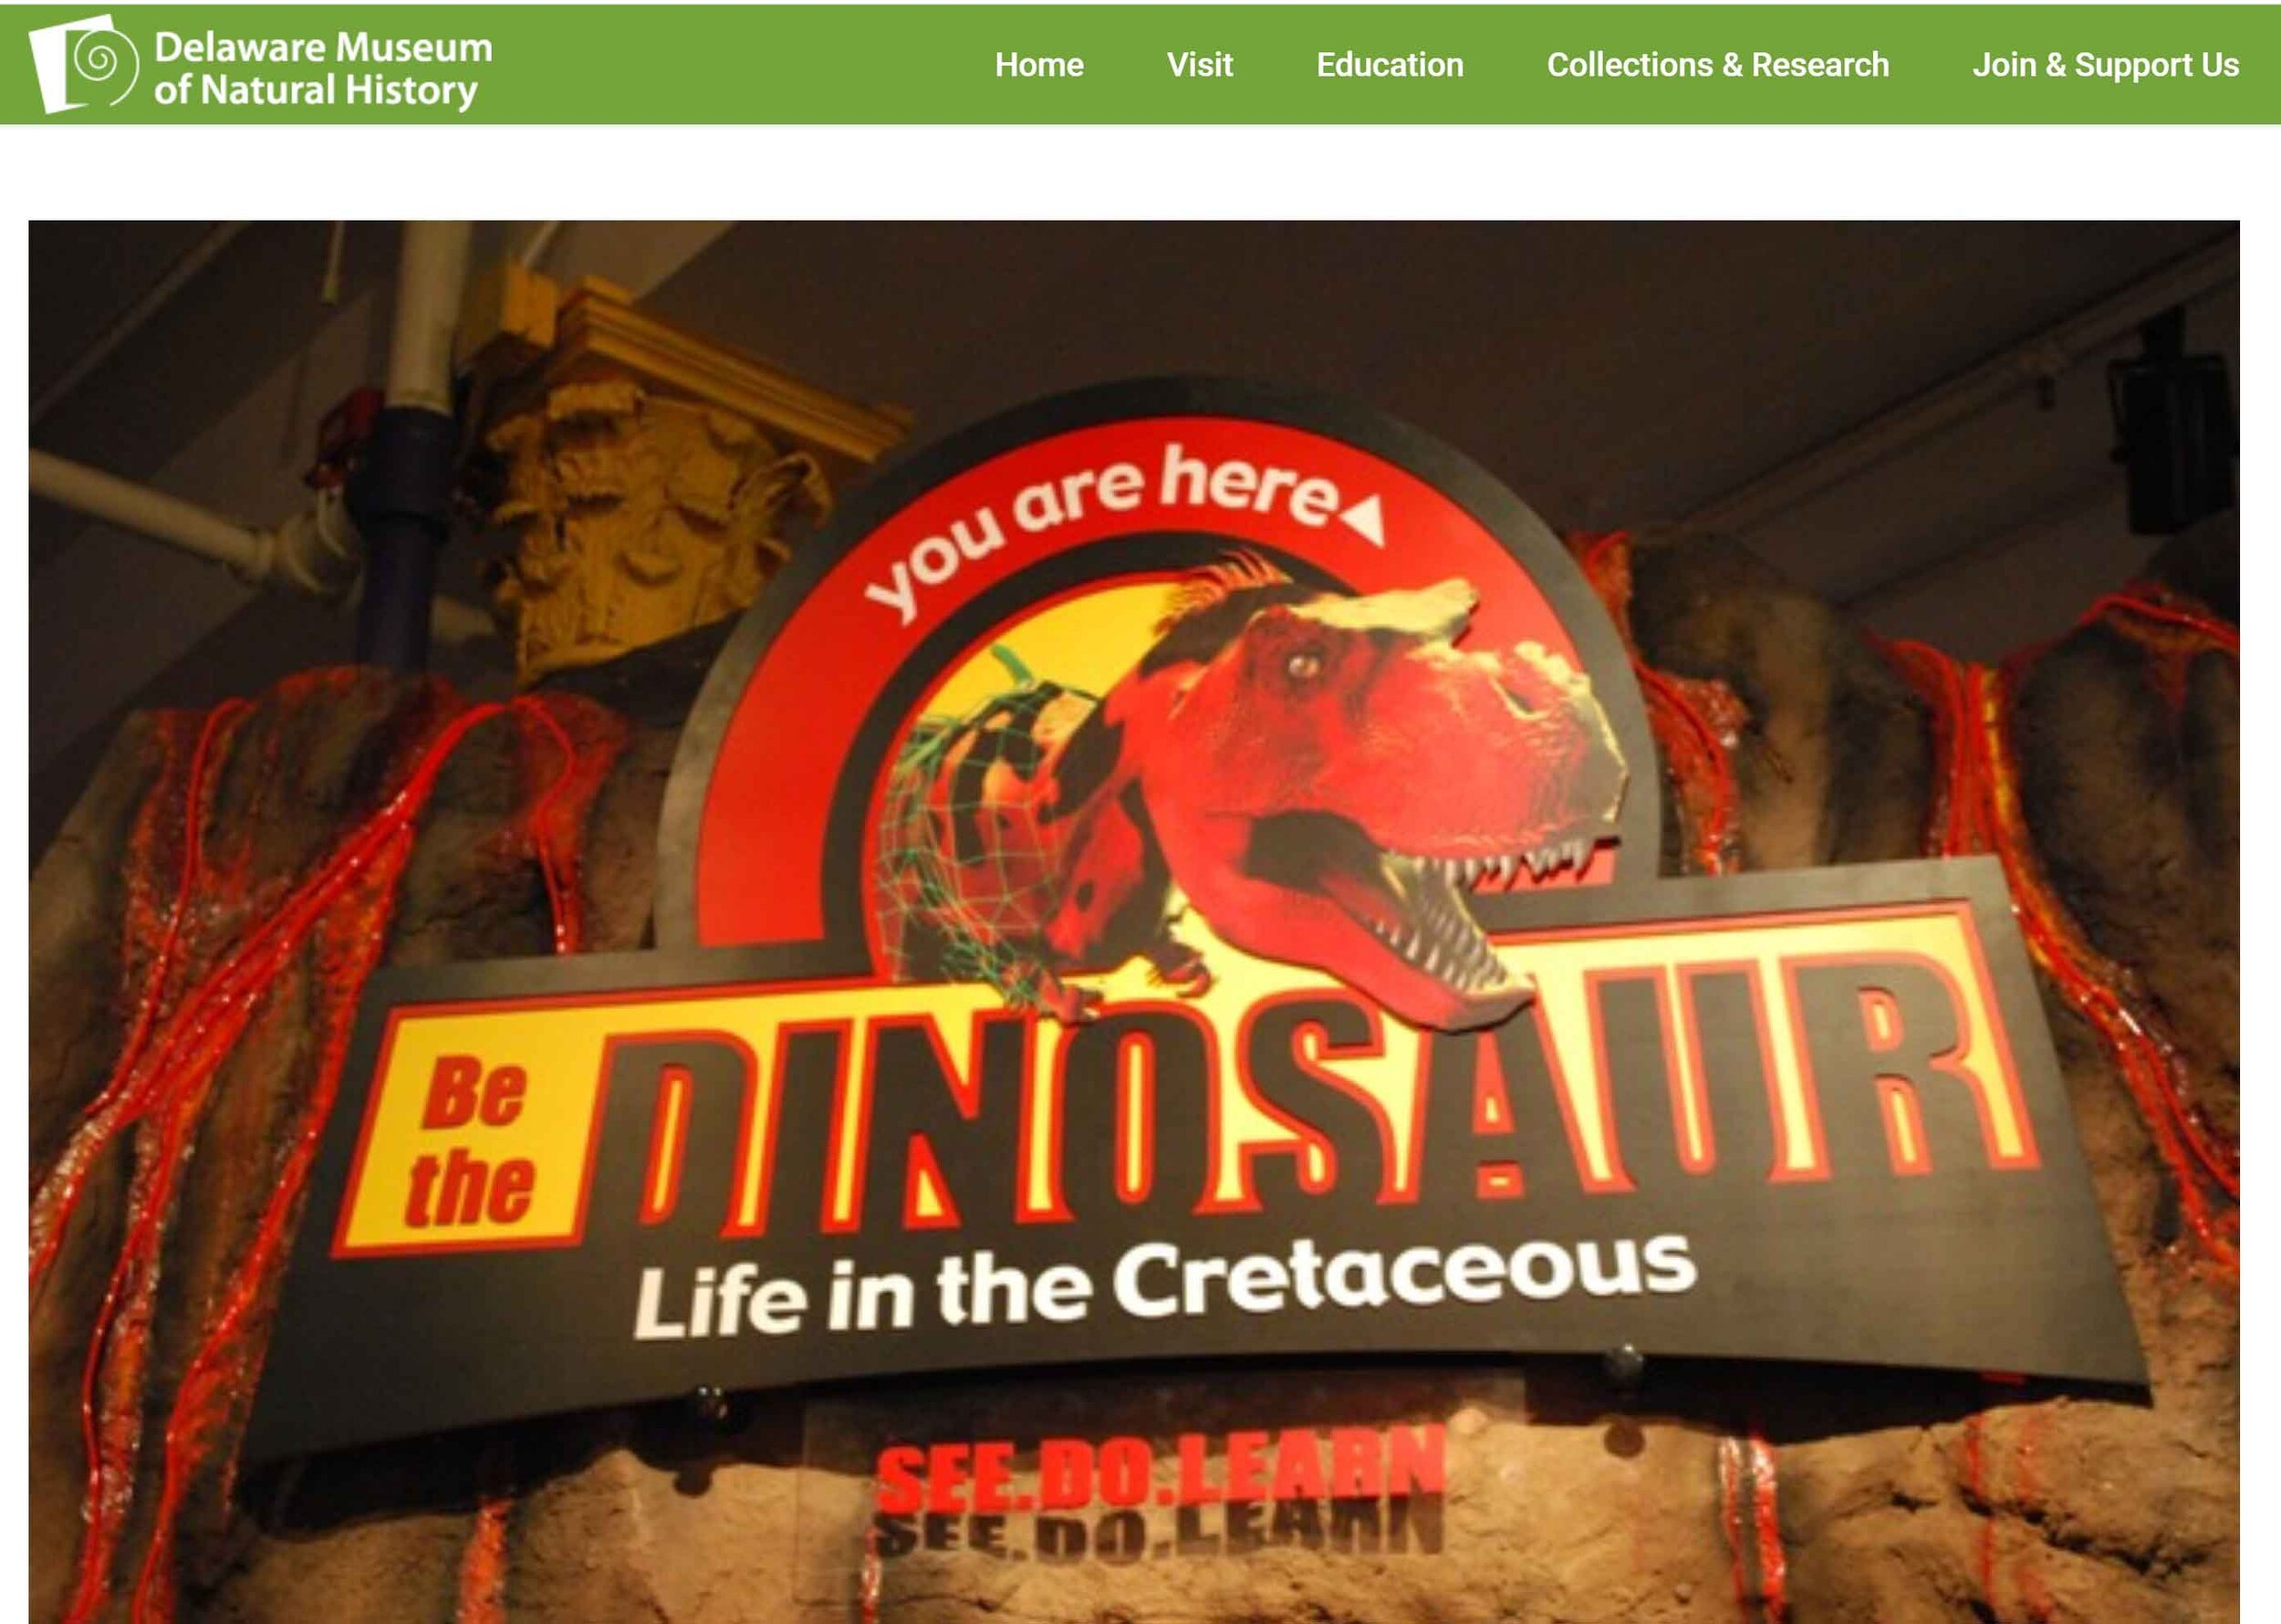 Delaware Museum of Natural History - October 26, 2019 - January 19, 2020